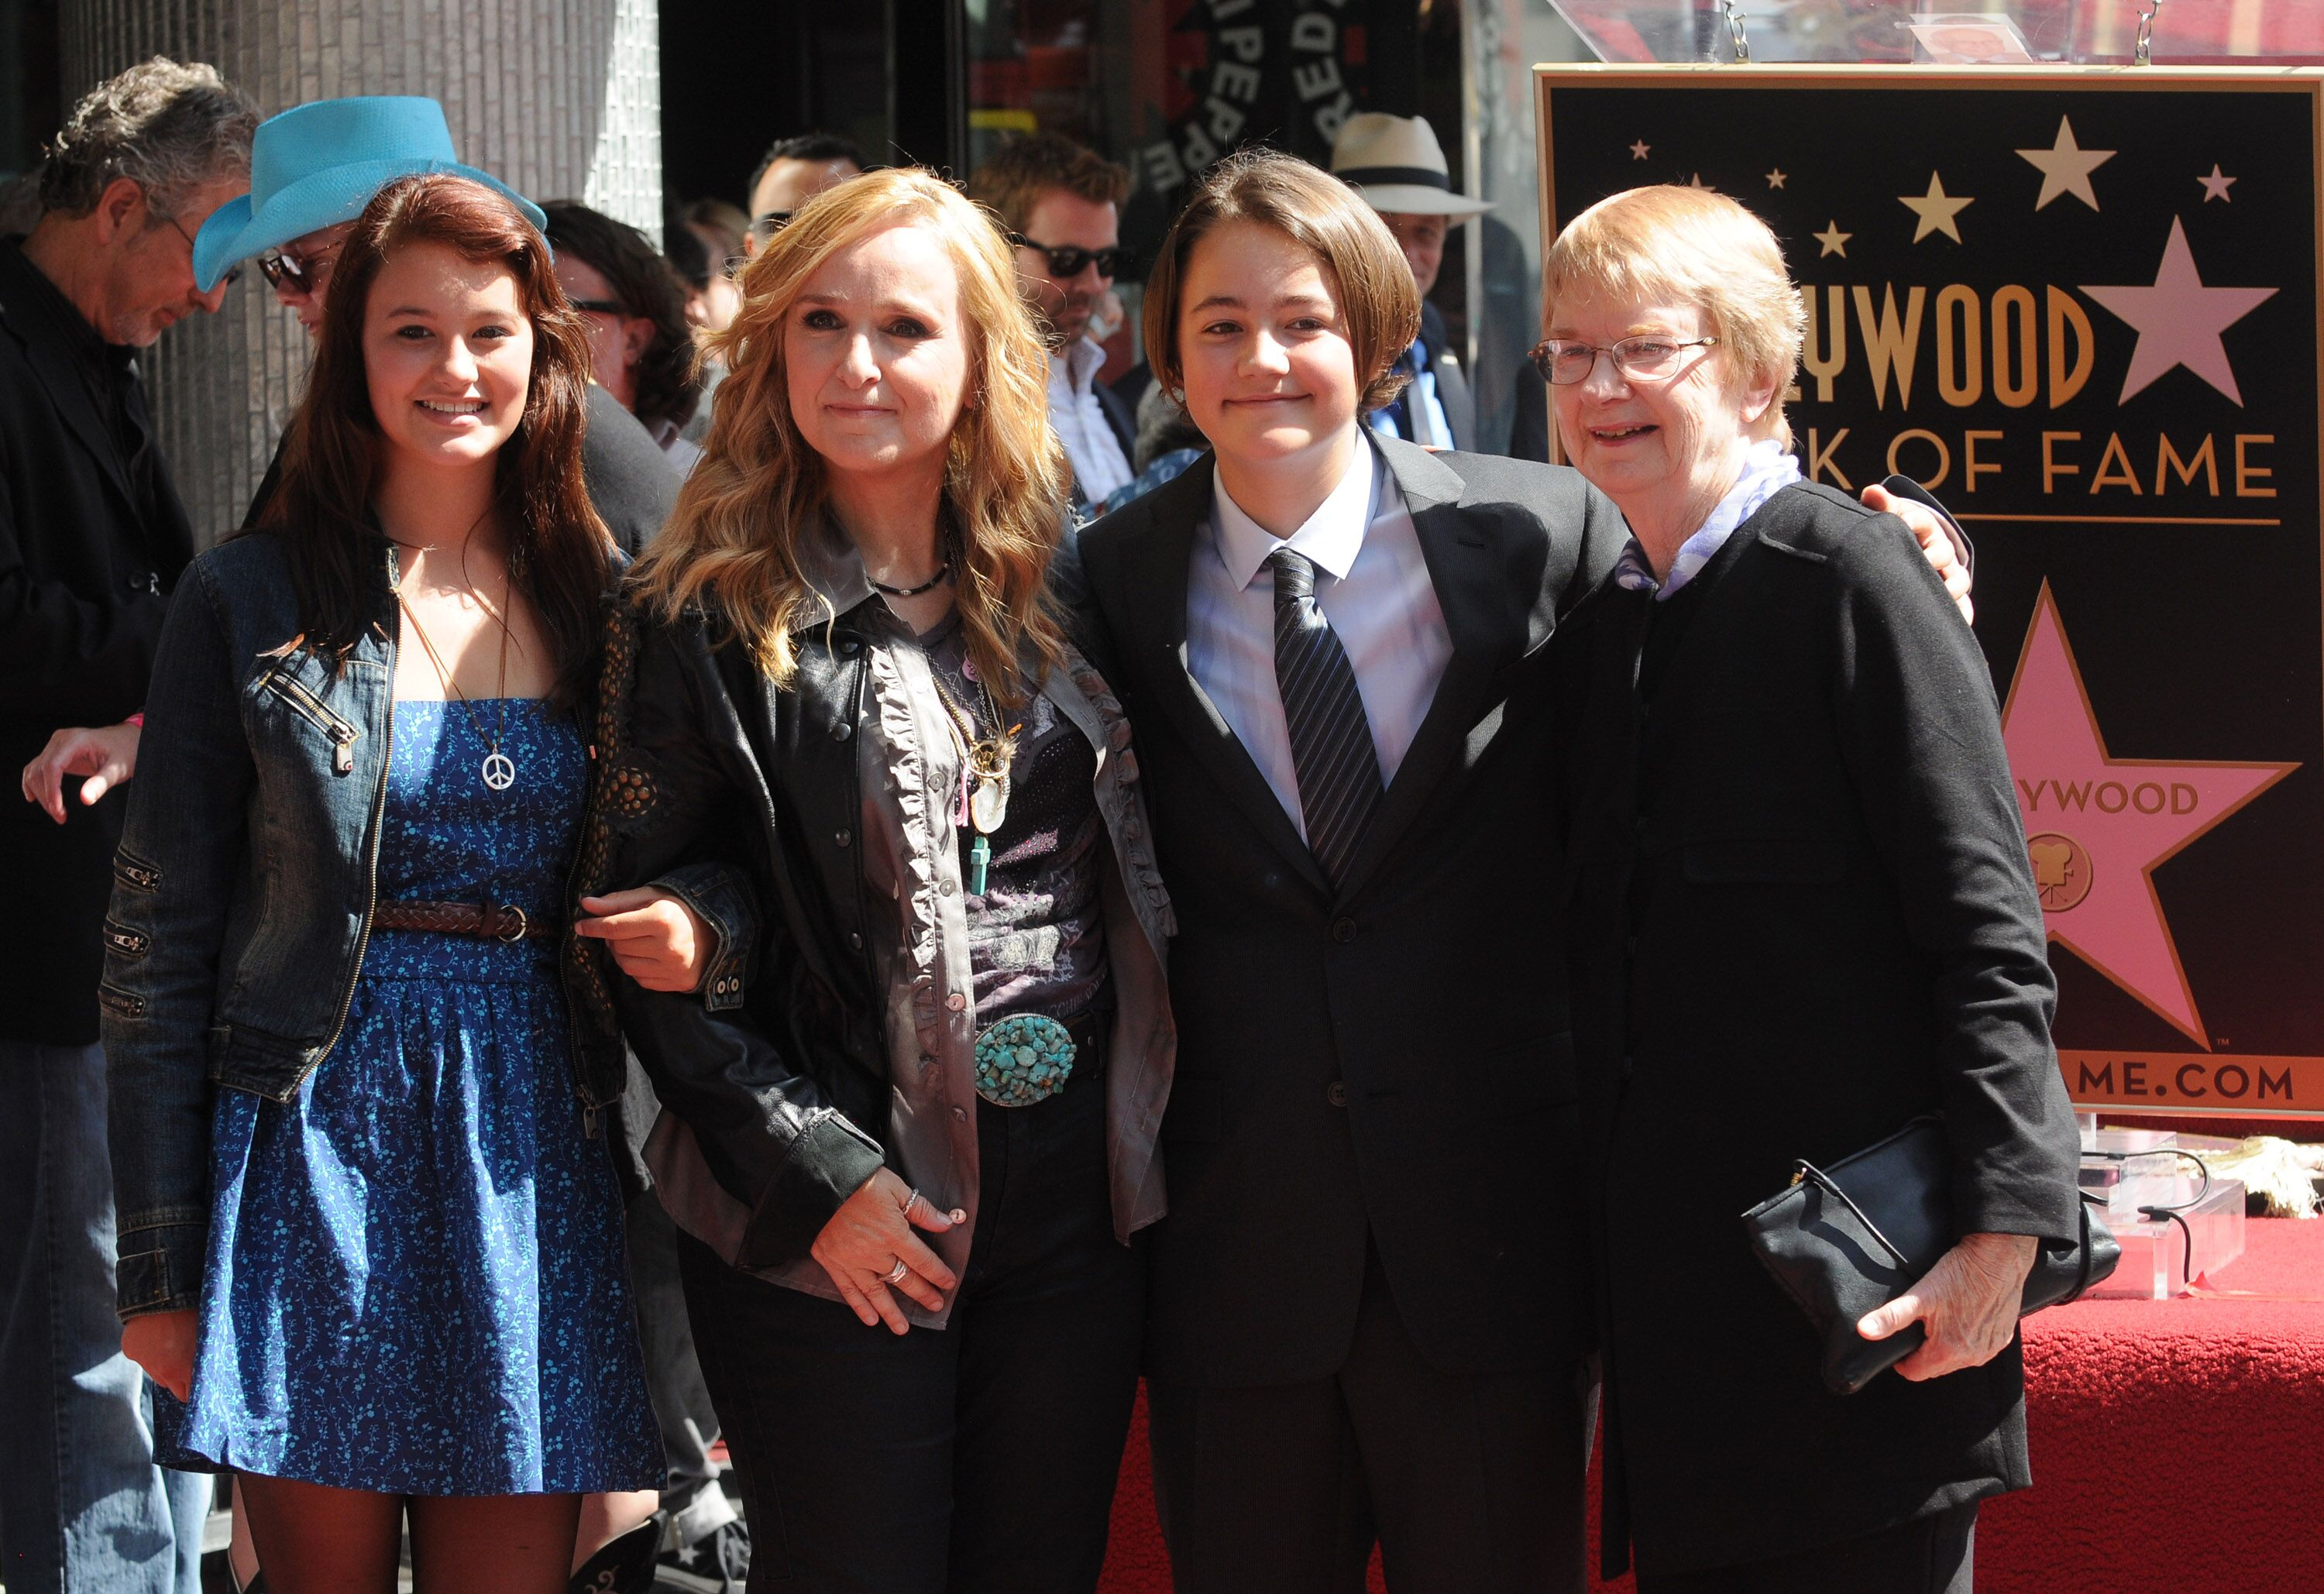 Bailey Cypher, Melissa Etheridge, Beckett Cypher and Elizabeth Williamson attend Melissa Etheridge's Hollywood Walk of Fame Induction Ceremony on September 27, 2011 in Hollywood, California. | Source: Getty Images